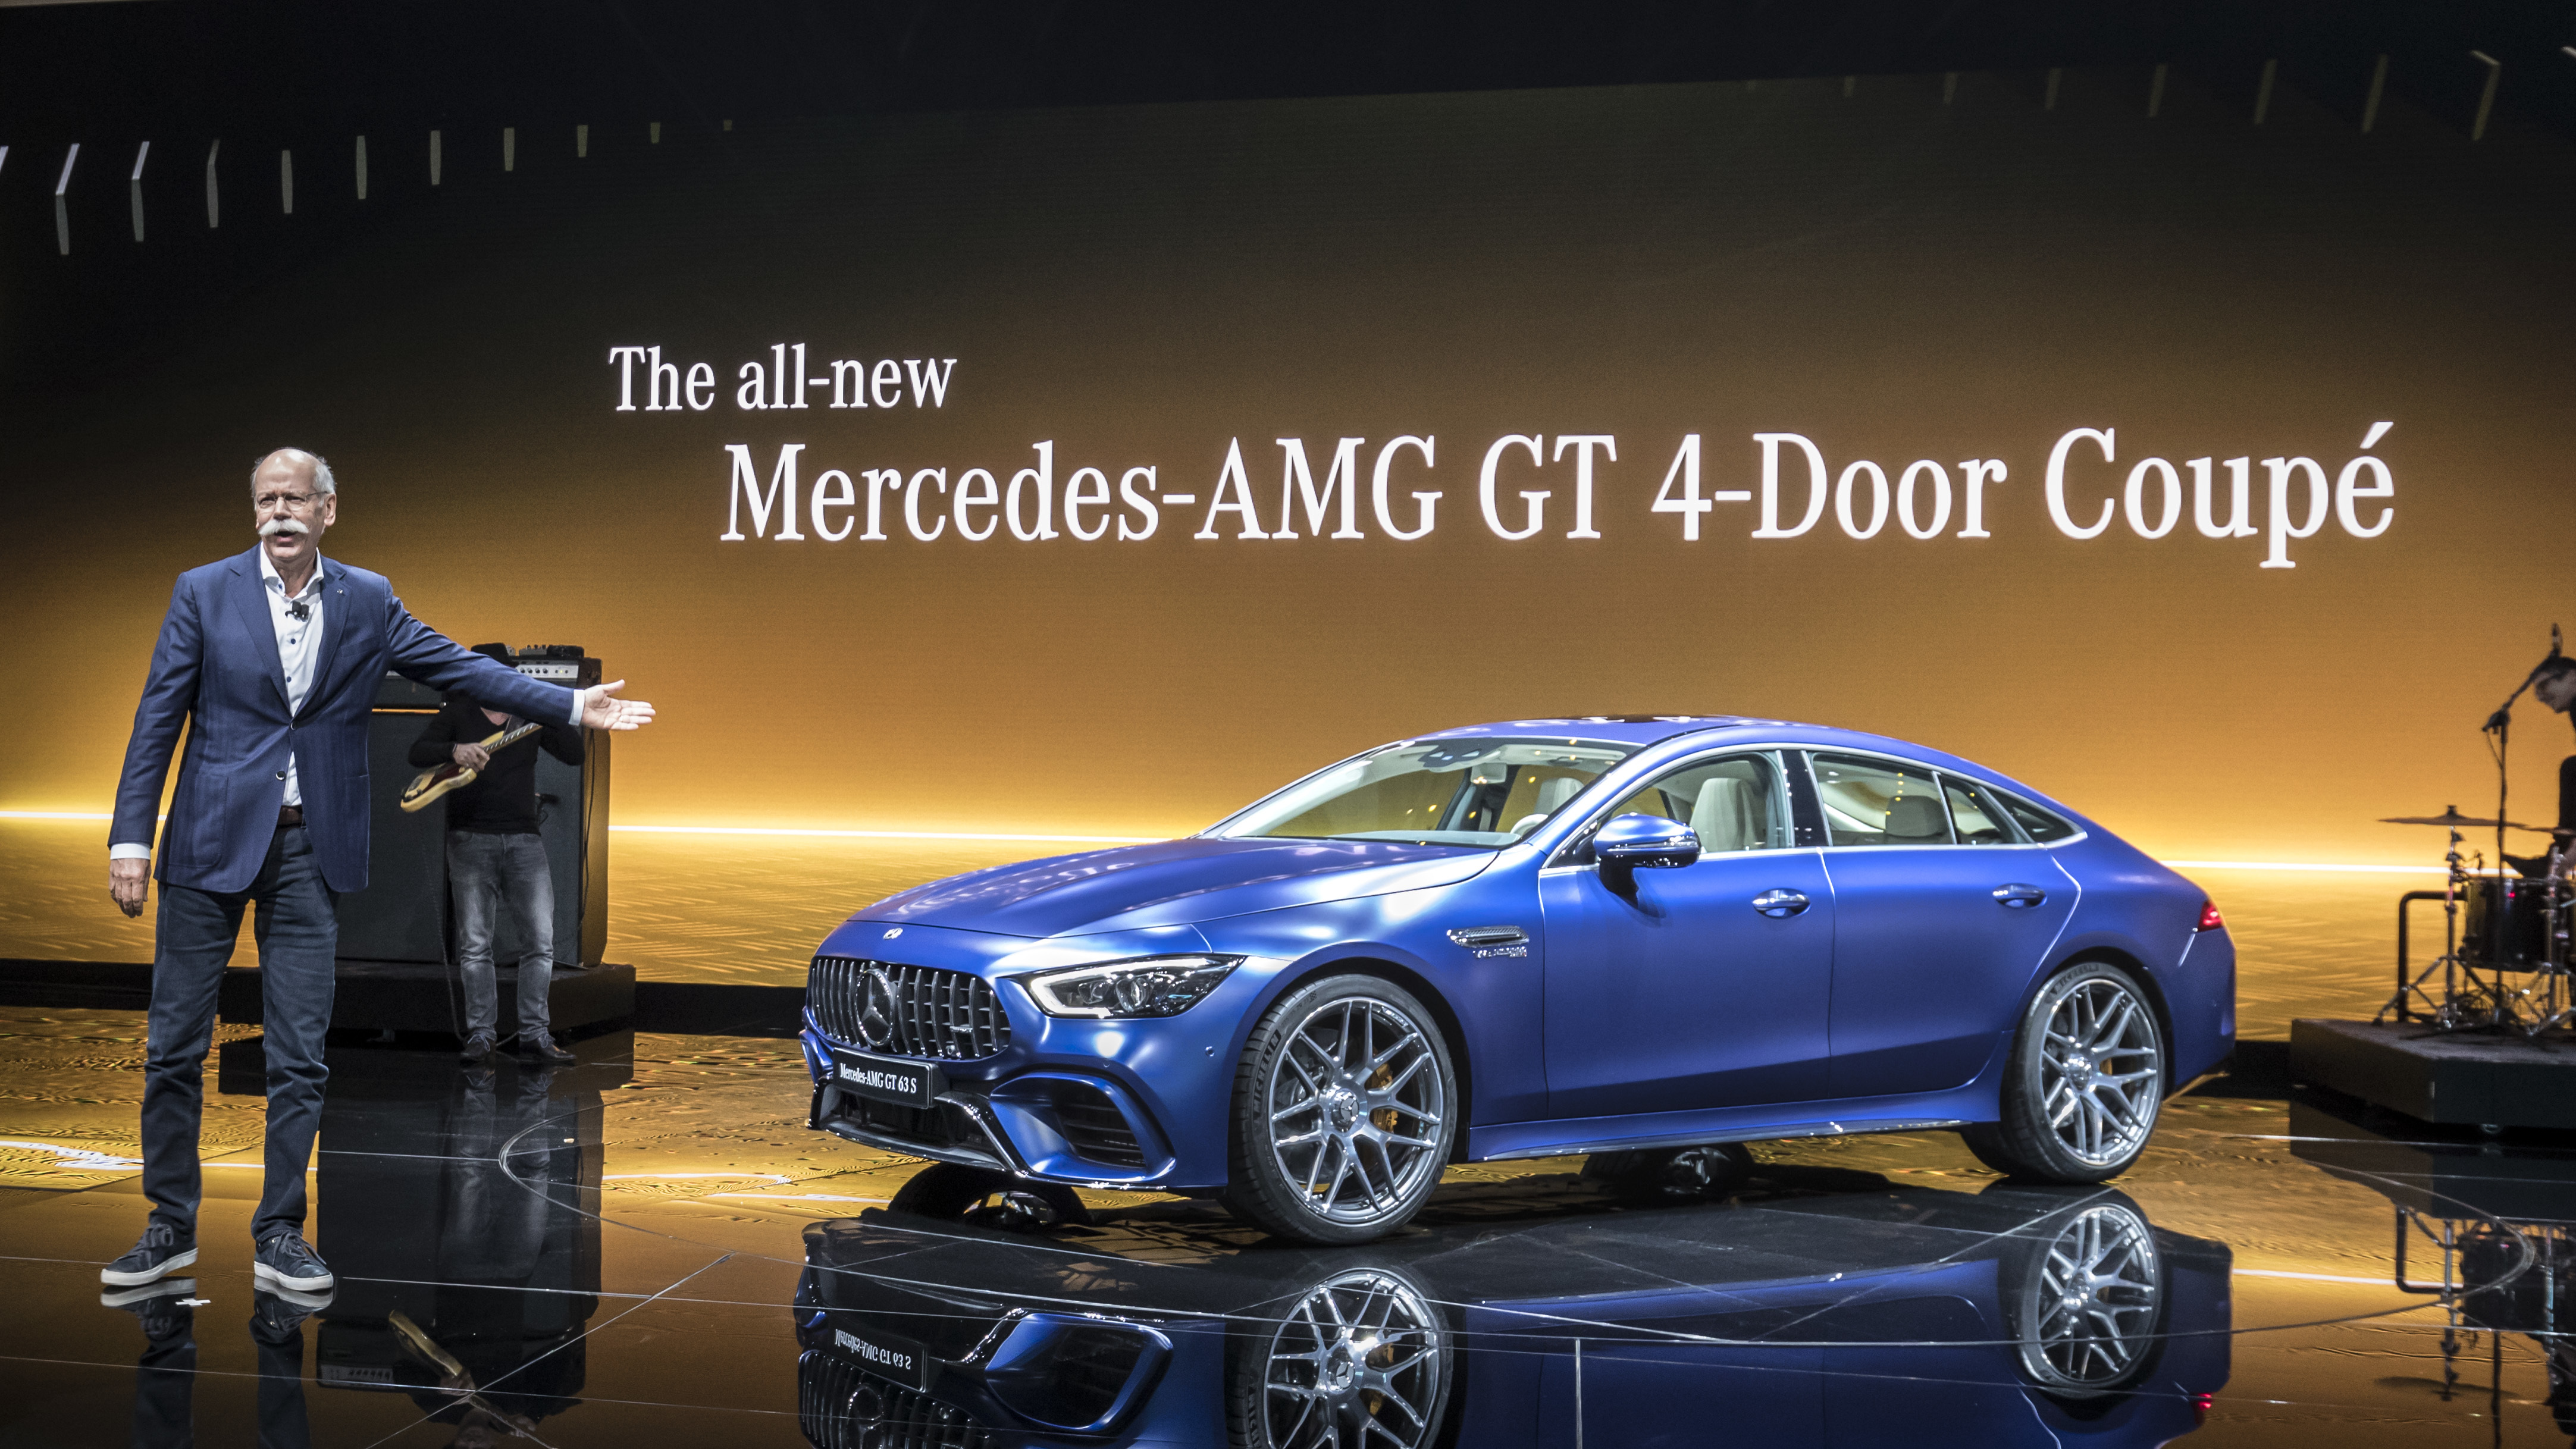 new 2019 mercedes amg gt coup is cooler than a cls motor illustrated. Black Bedroom Furniture Sets. Home Design Ideas